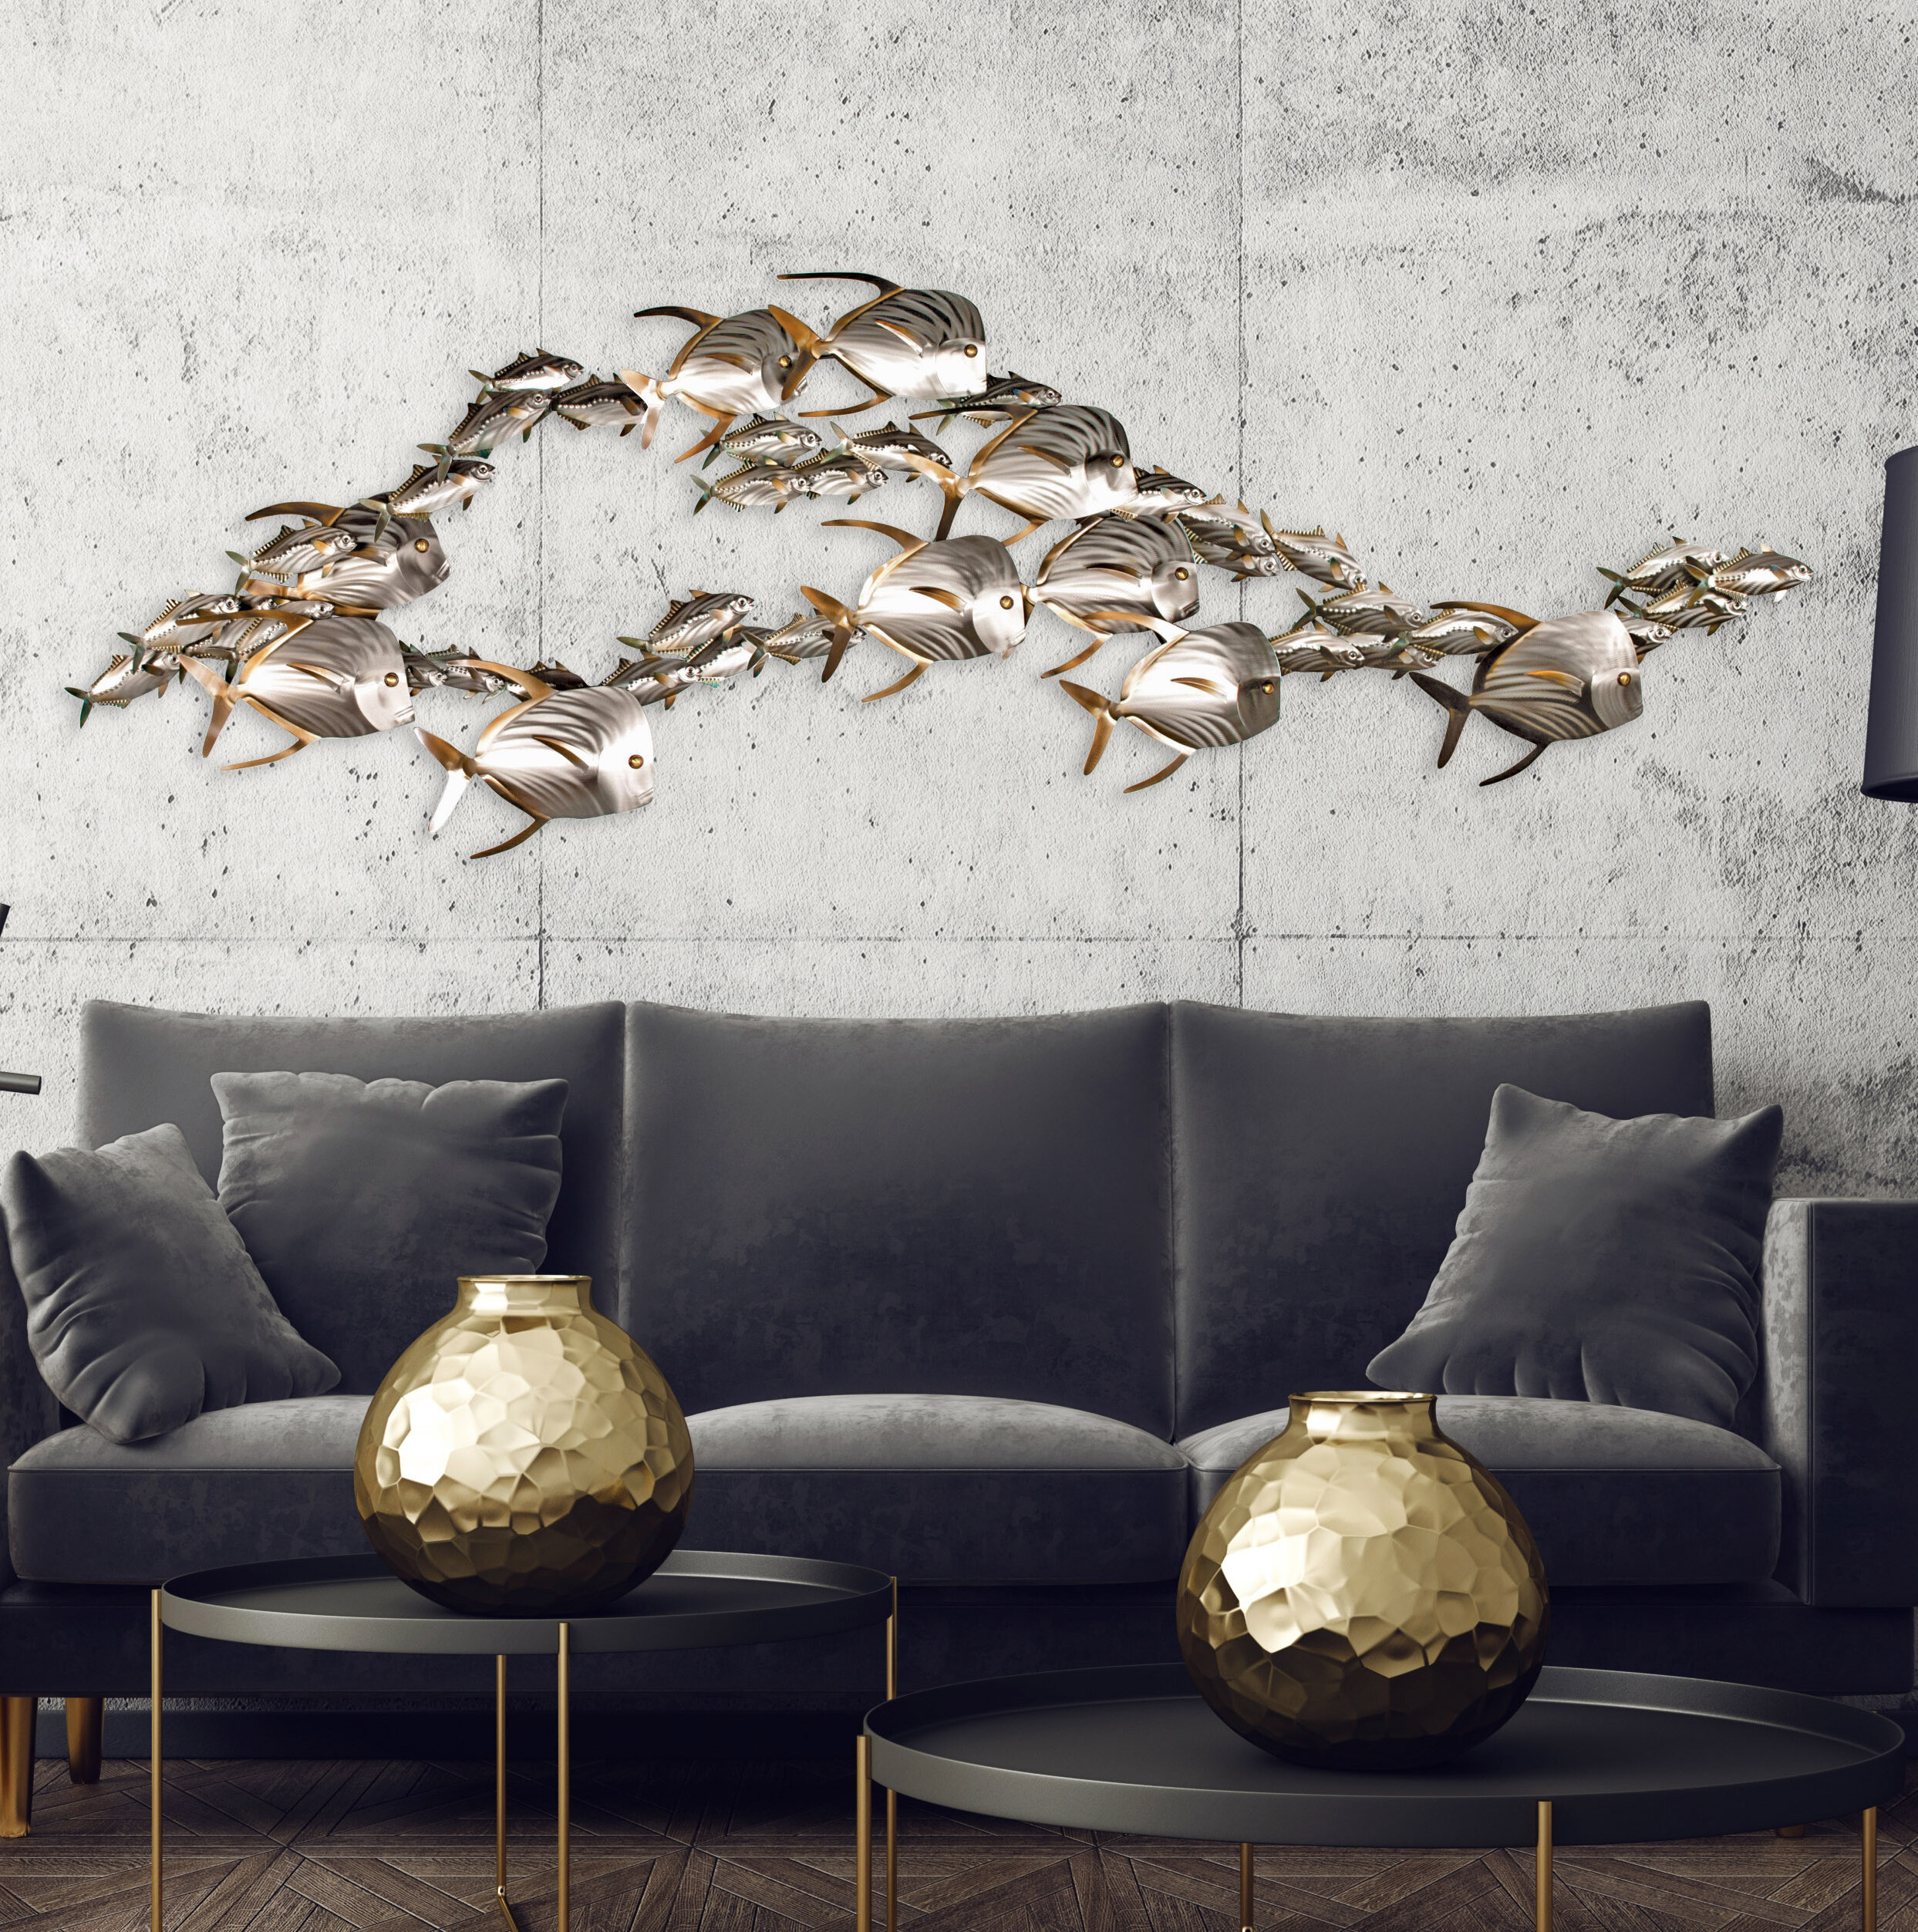 Rosecliff Heights Lookdown Fish And Sardines School X Large Metal Wall Decor Reviews Wayfair